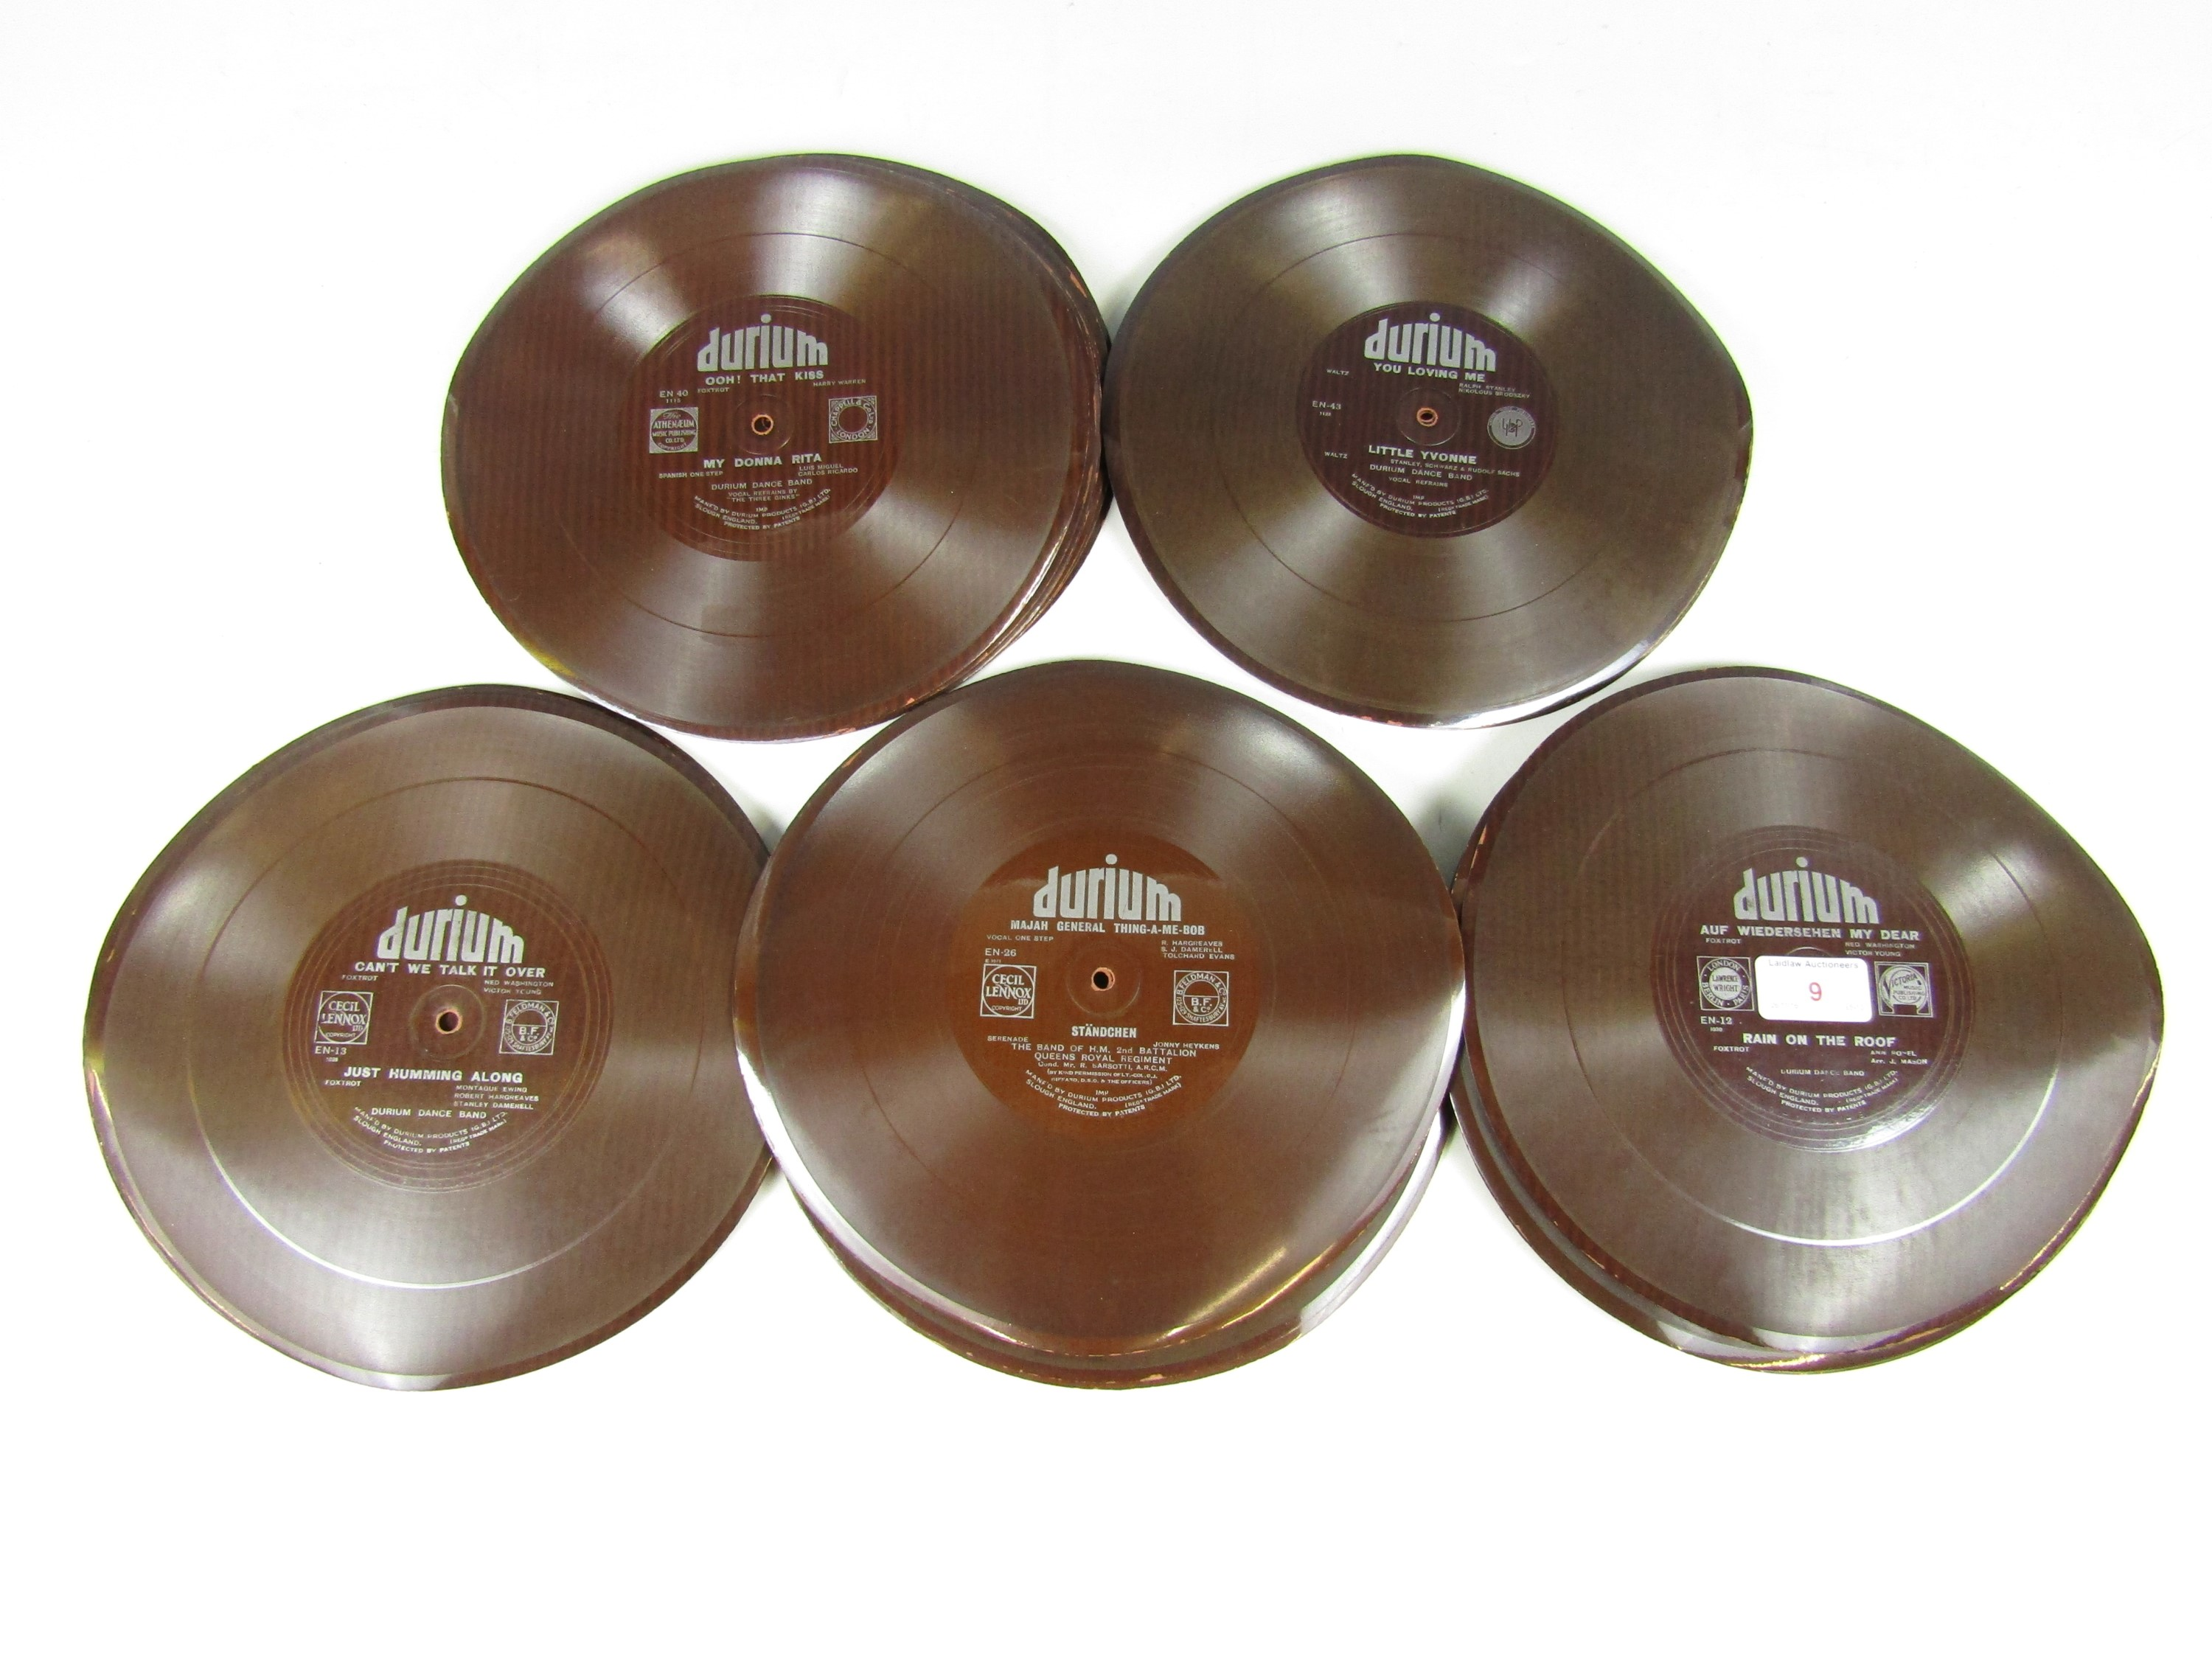 Lot 9 - A quantity of vintage Durium single-side Gramophone records